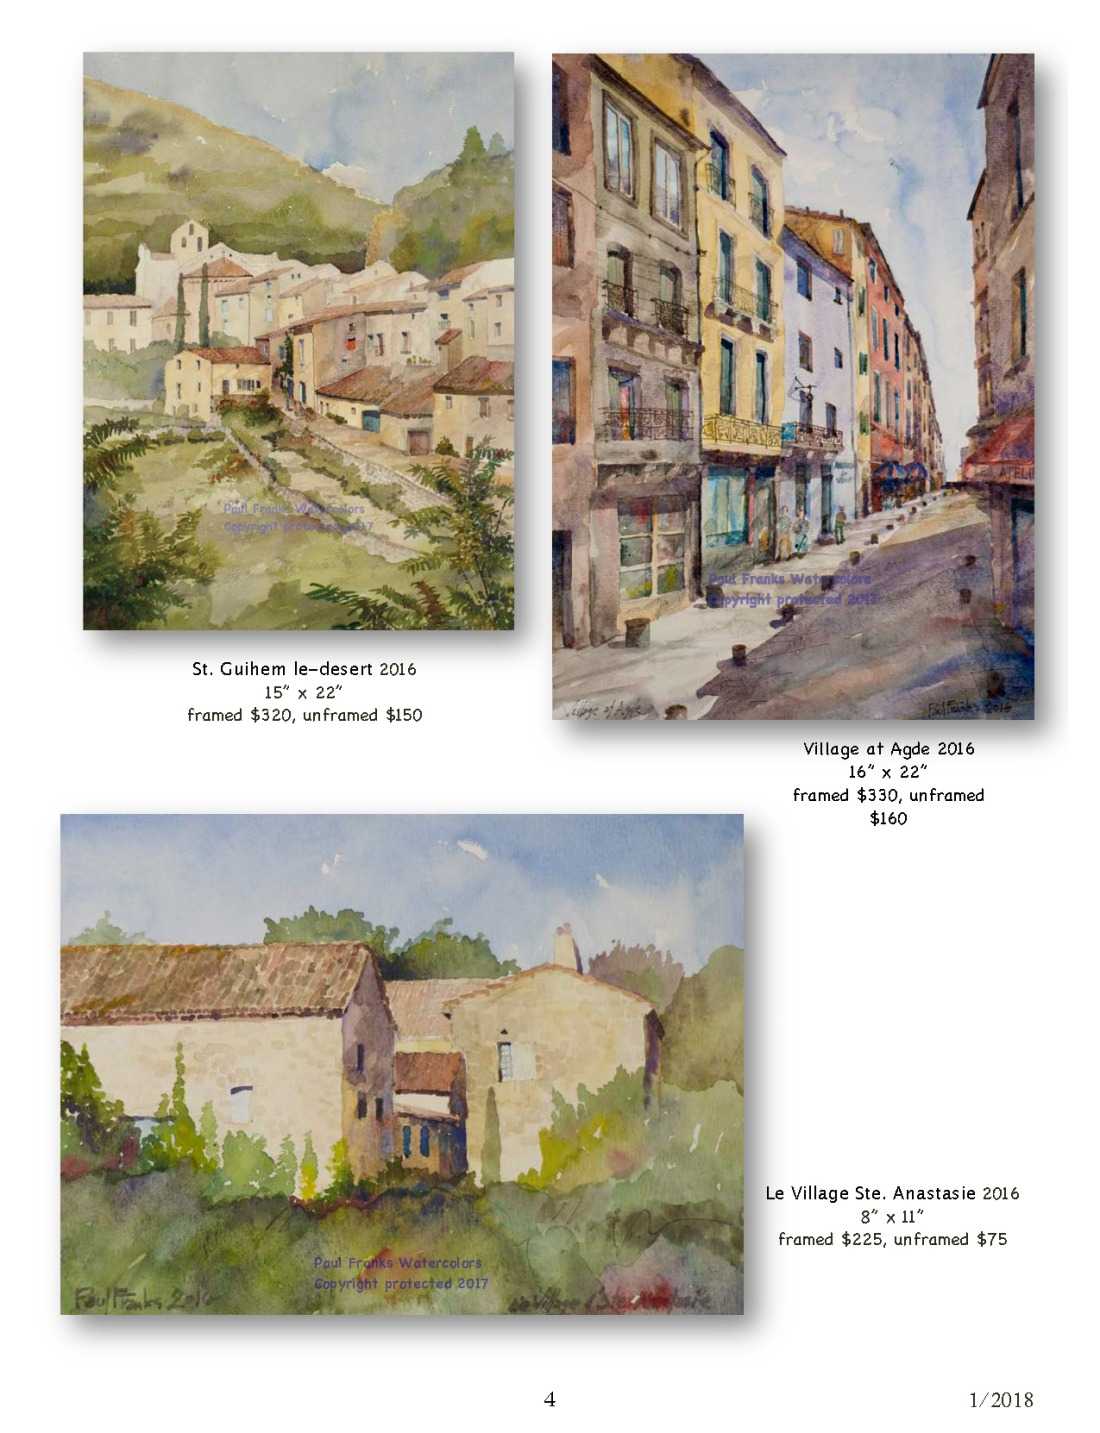 Paul Franks Watercolor Catalog-2 French Landscapes1_11_18_Page_4